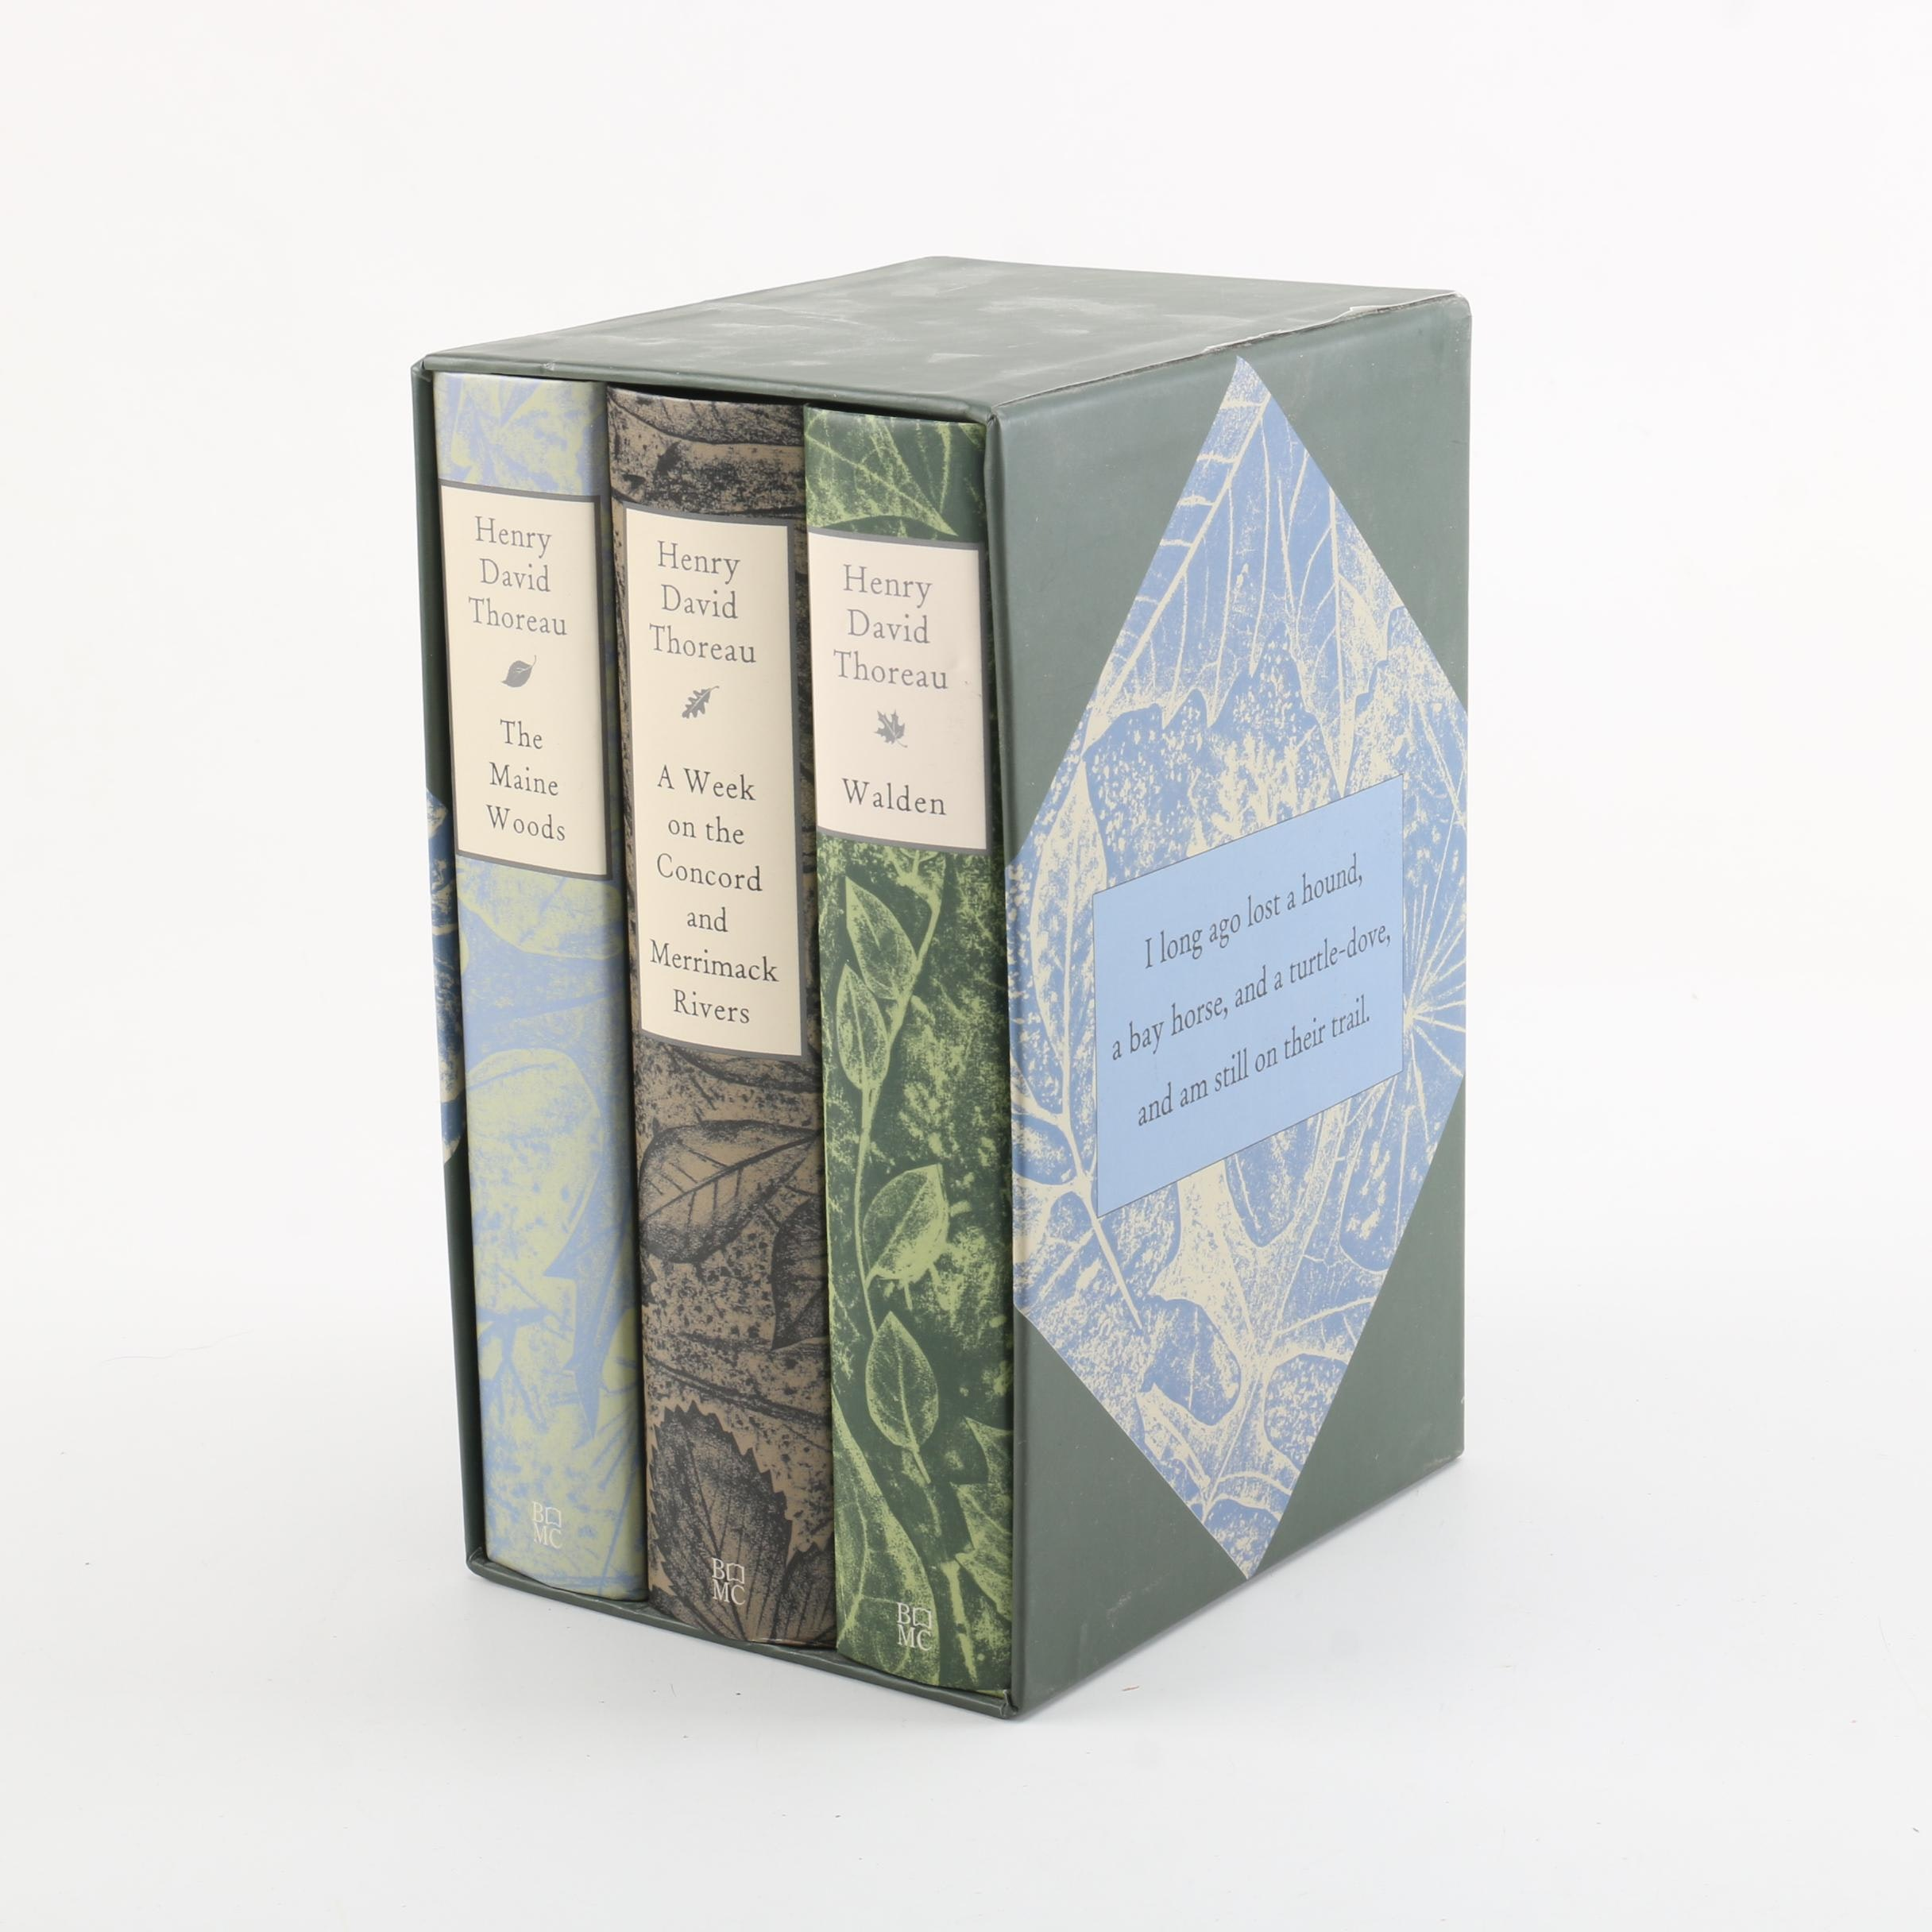 Book-of-the-Month Club Box Set of Works by Henry David Thoreau